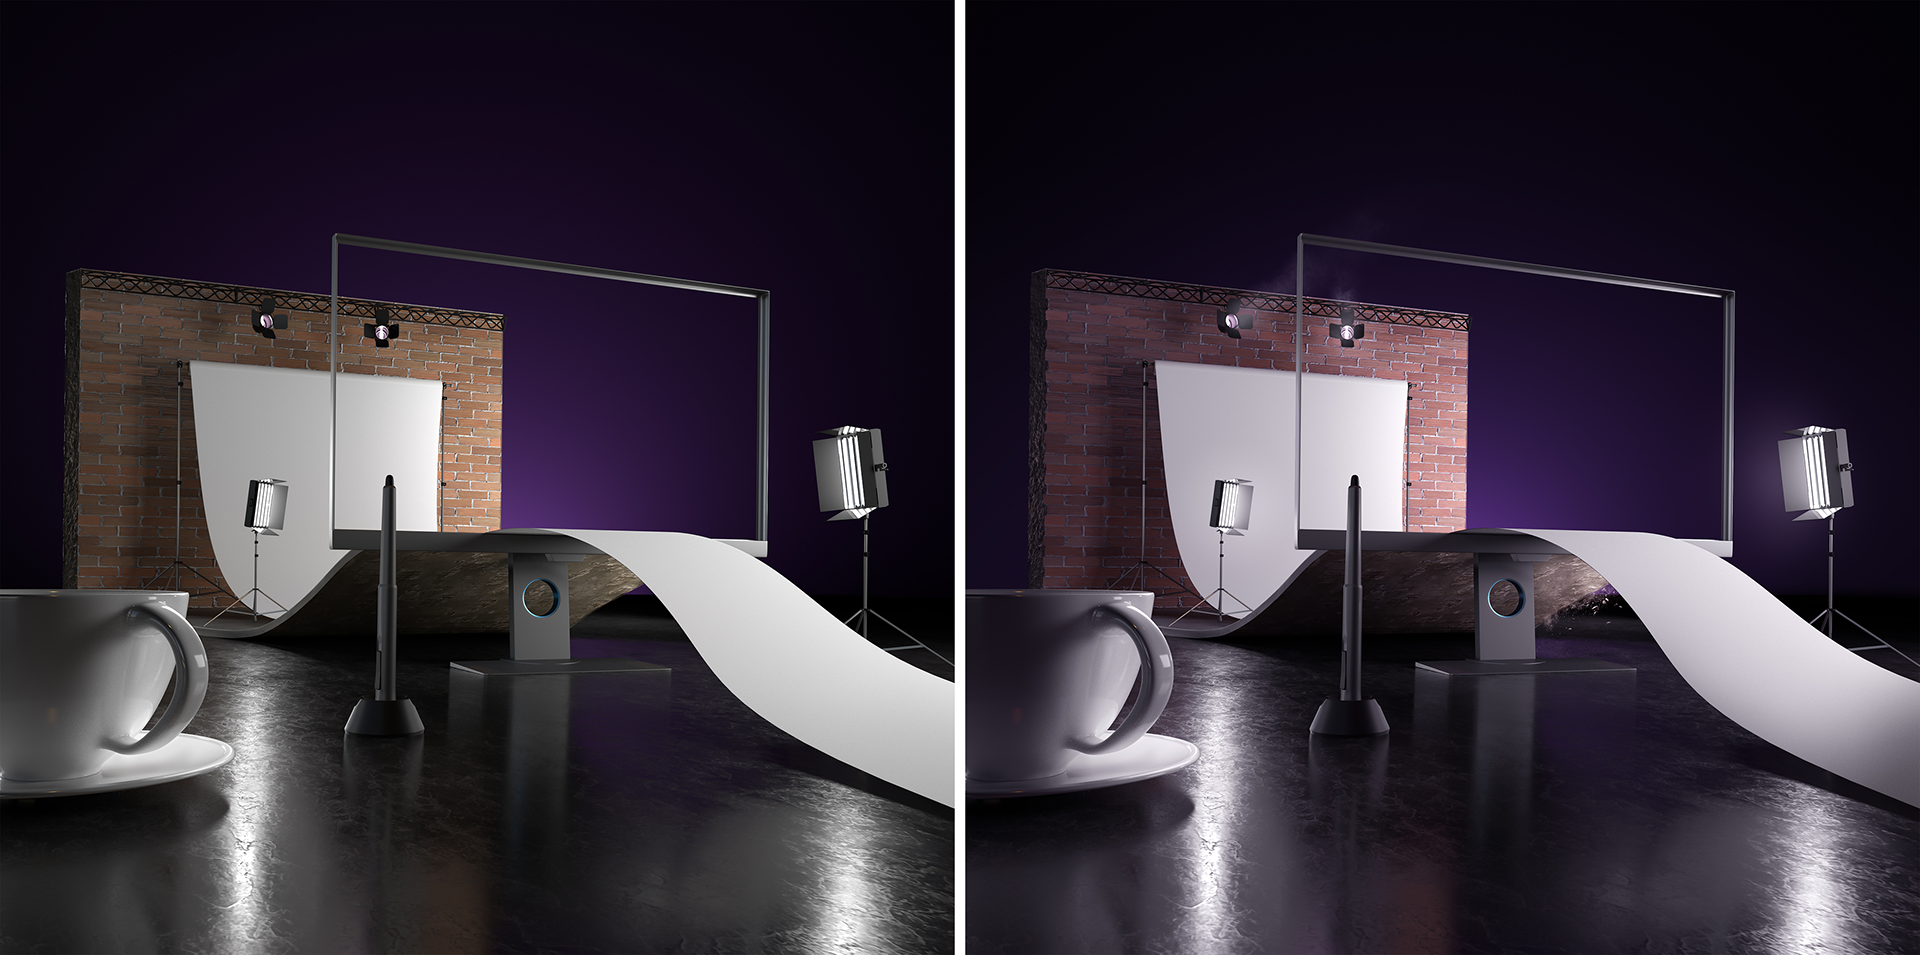 Claudio_errico_digital_artist_art_cgi_cg_3d_lighting_photography_integration_art_direction_benq_contest_monitor_process_1